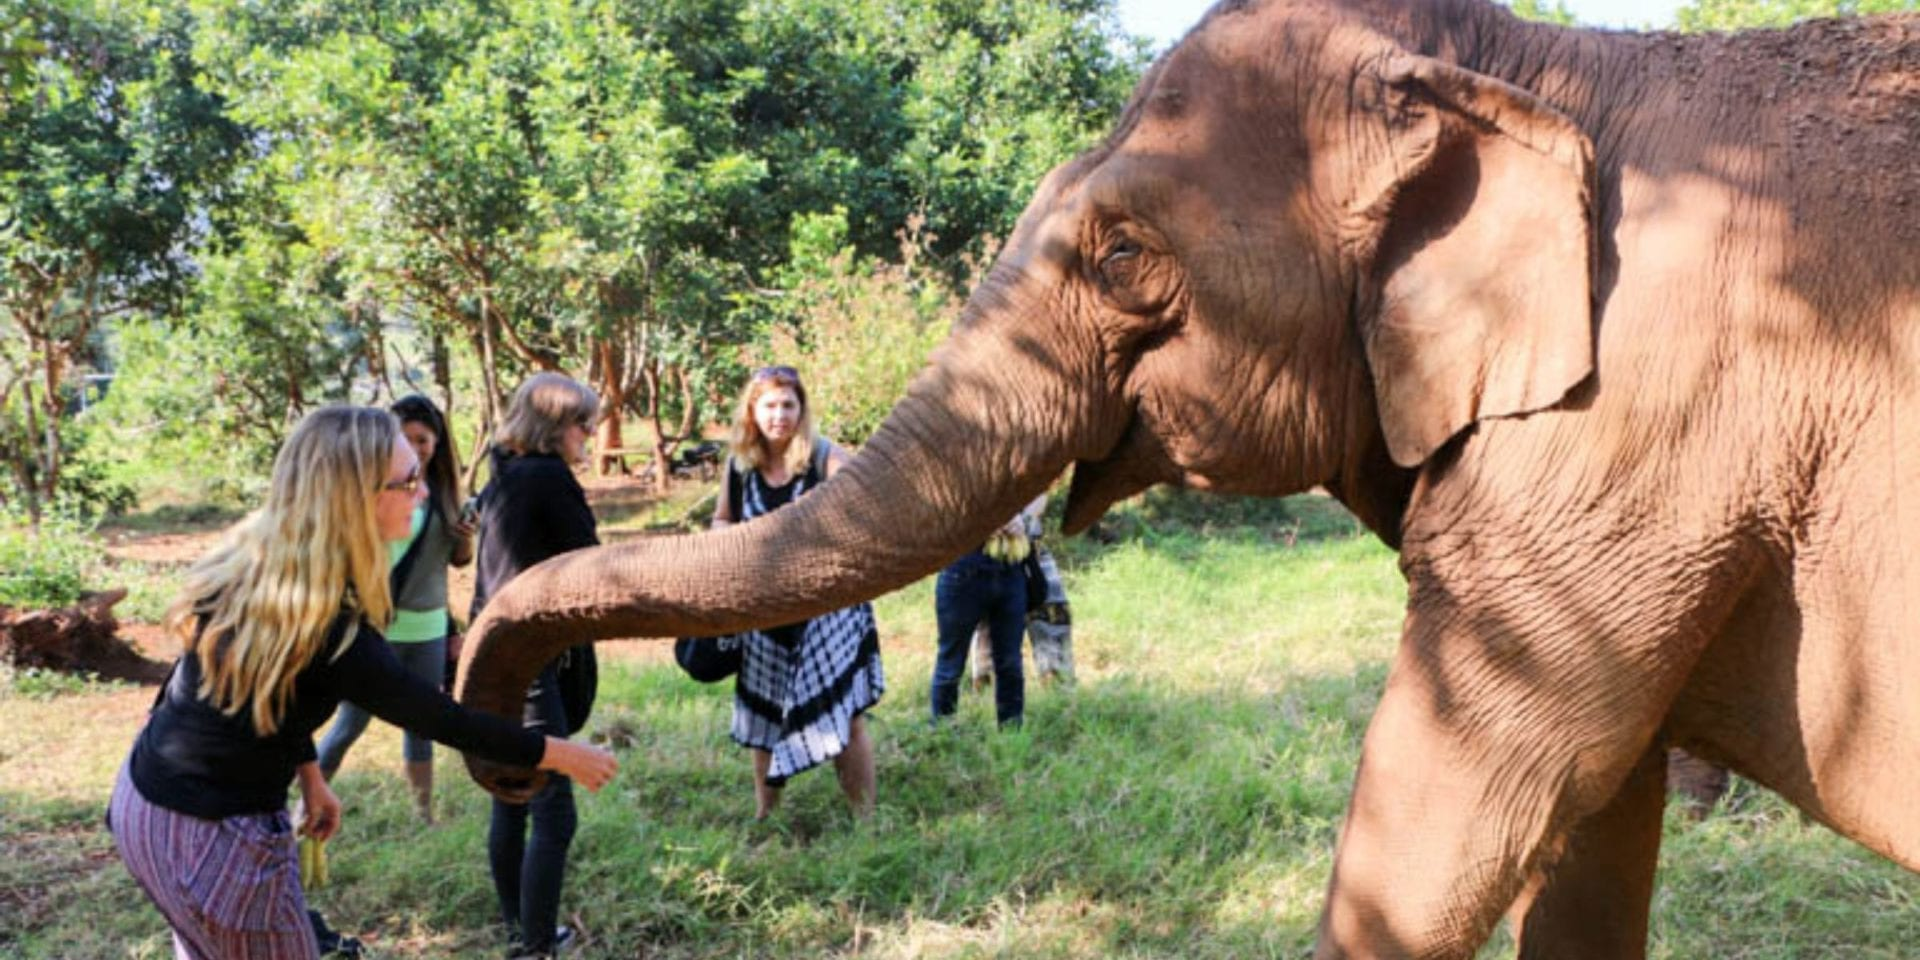 Feeding elephants at an ethical elephant sanctuary